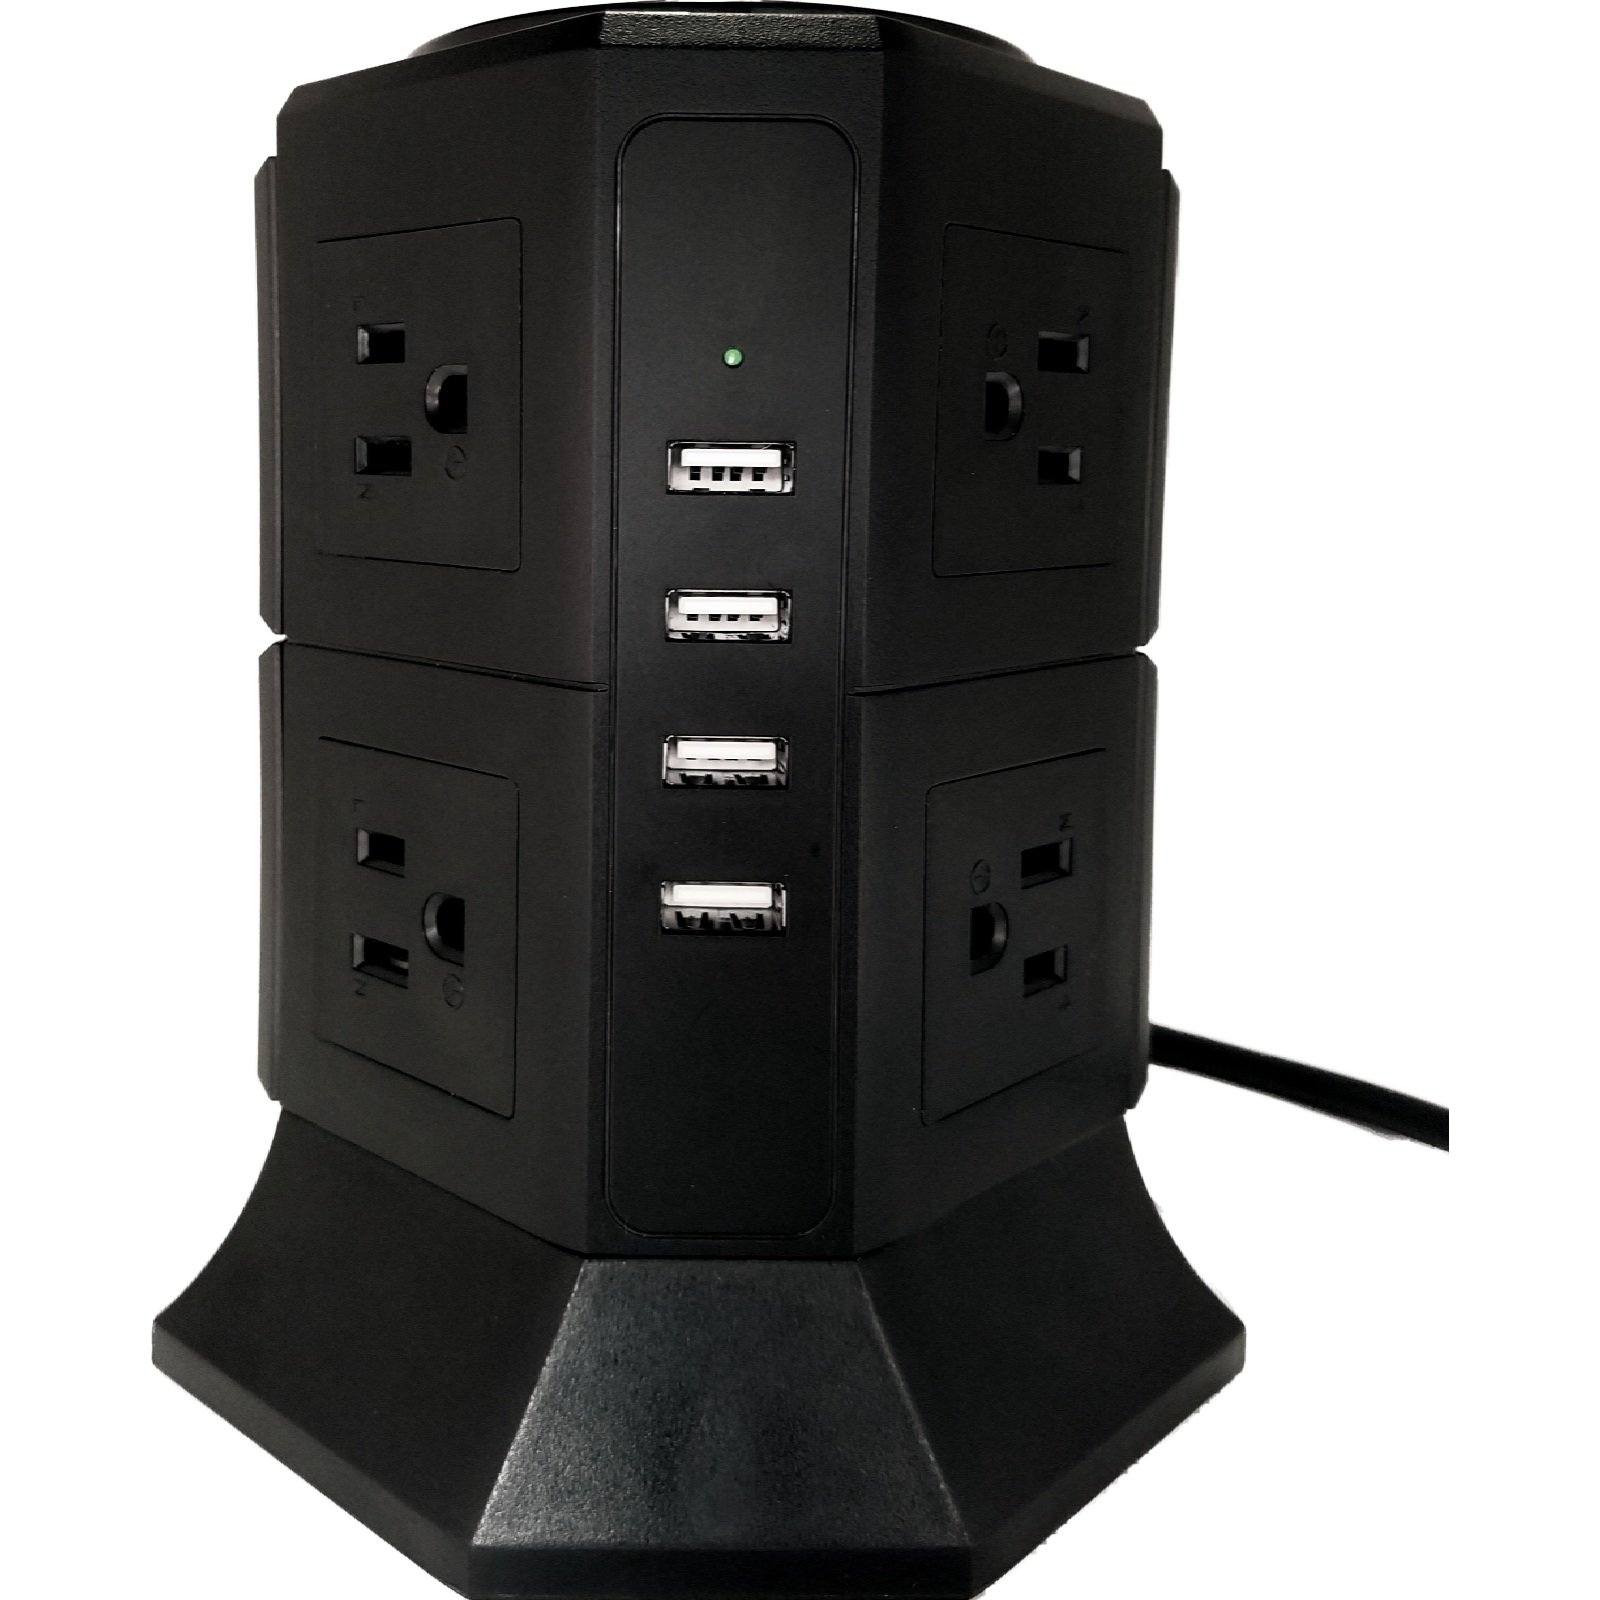 4 USB Ports and 8 Outlets Desktop Power Station, Surge Protector, Power Strip, Power Cord, Commercial Power Strip, Charging Port, for Office, Home, and Multi Use! - by: Prime Home